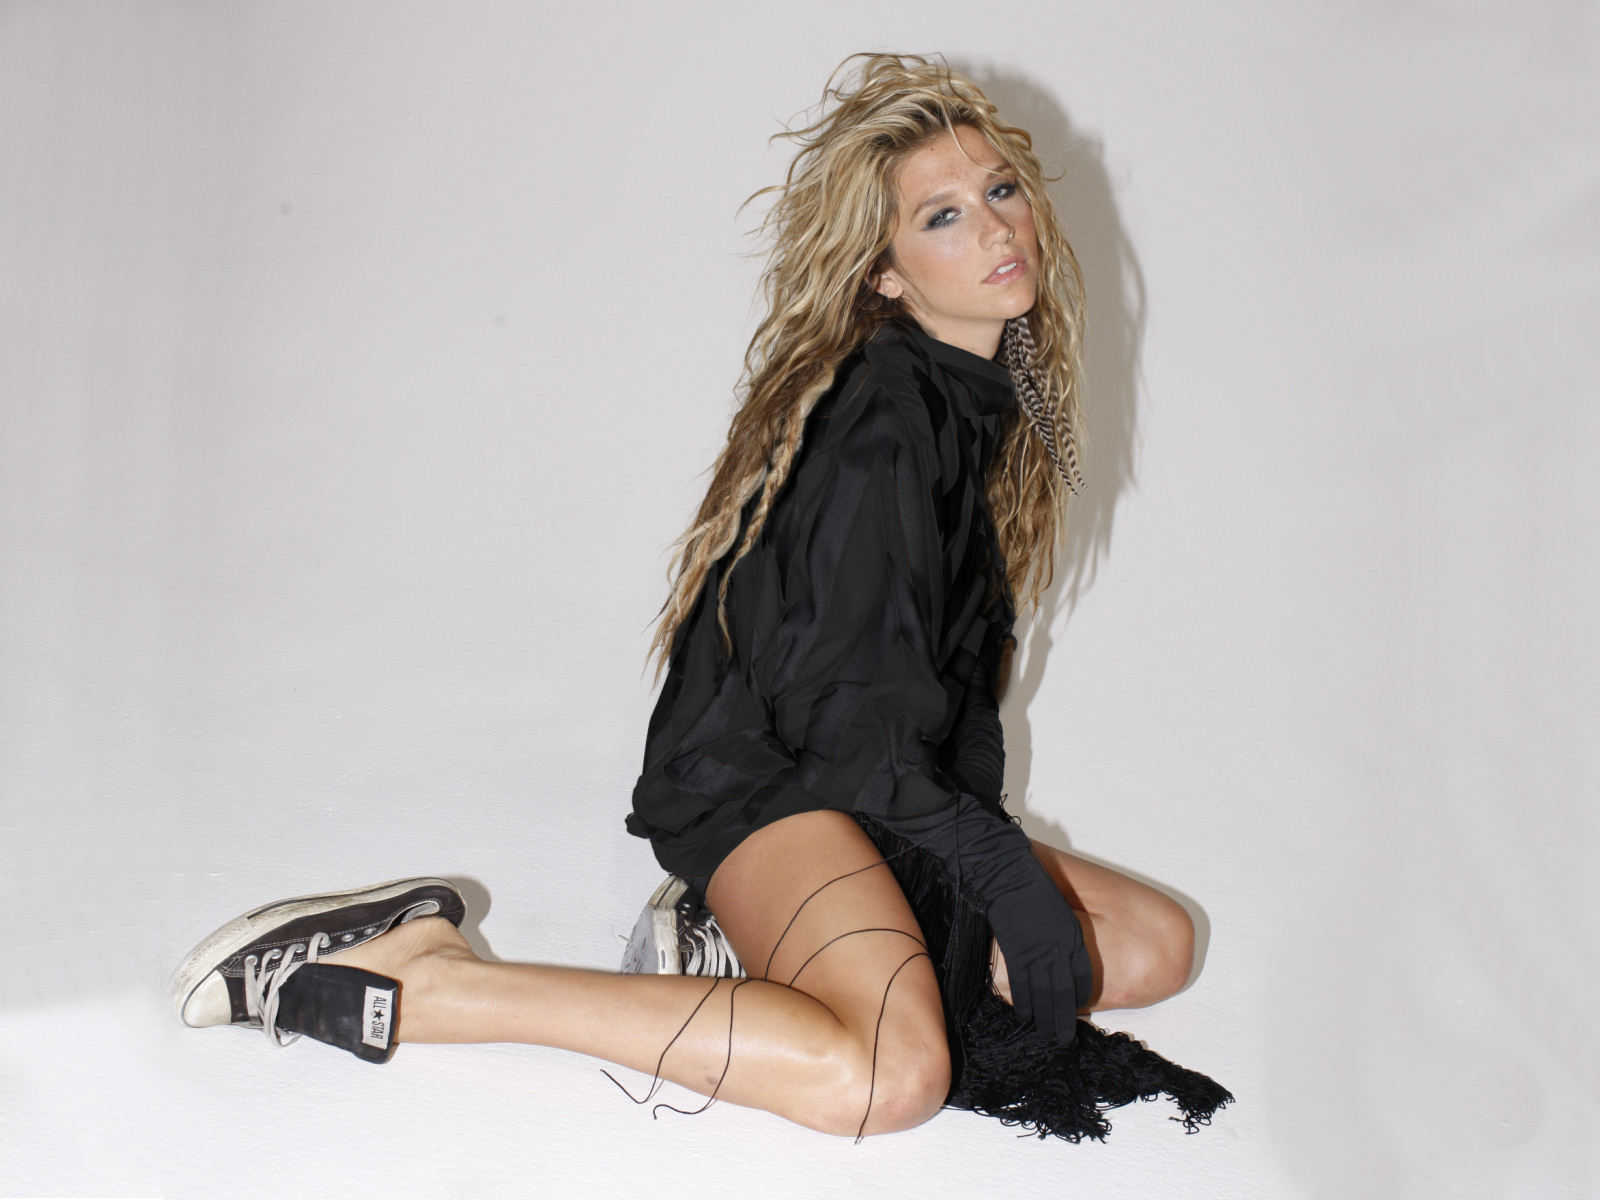 Wallpaper Kesha Kesha Wallpaper Tik Tok Celebrity Wallpaper Sexy 1600x1200